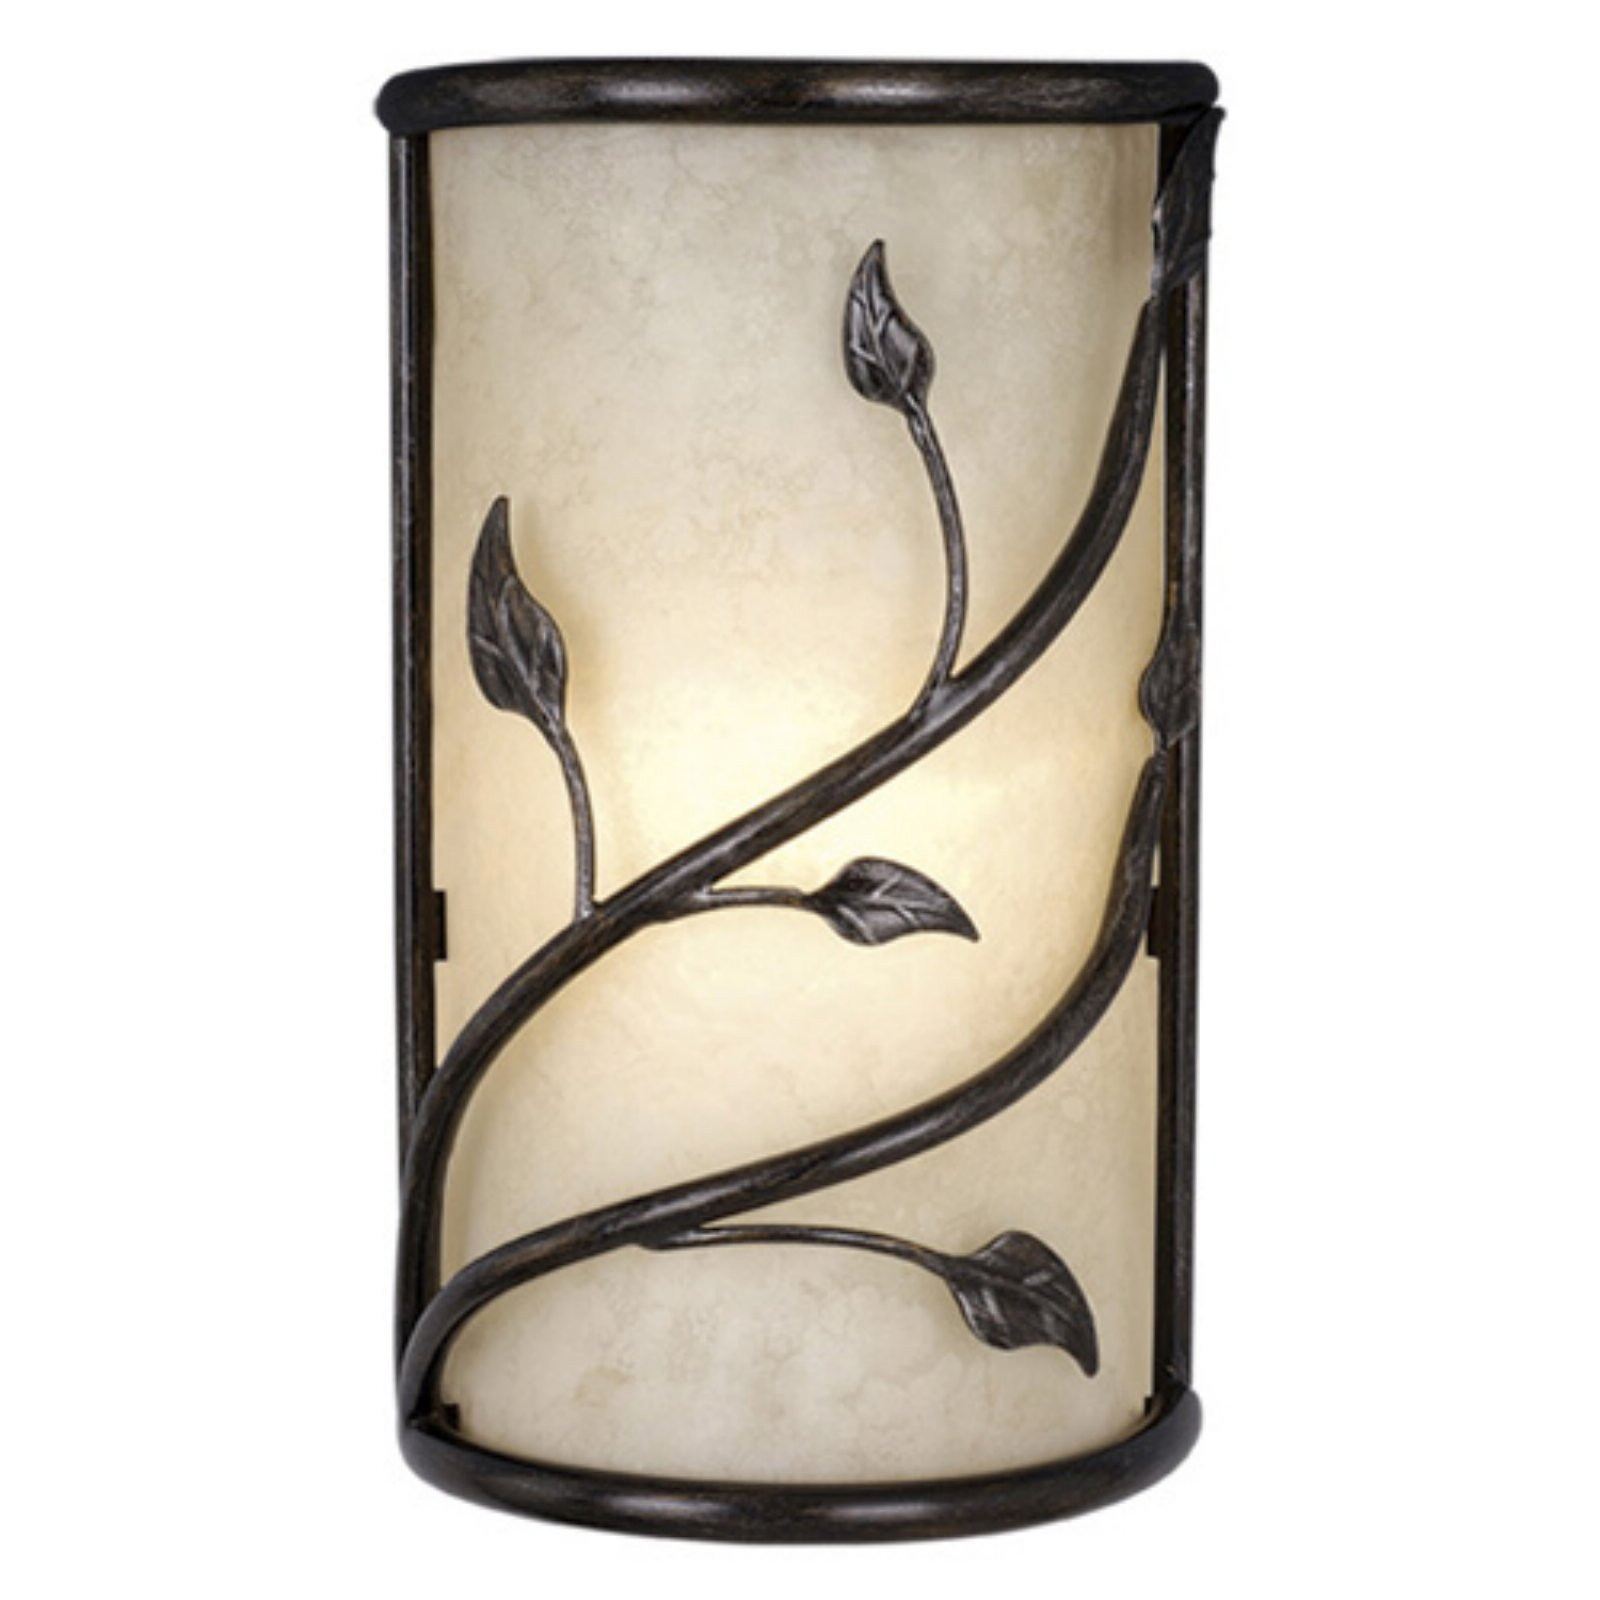 Vaxcel Vine Wall Sconce with Amber Flake Glass - 9.25W in. Oil Shale